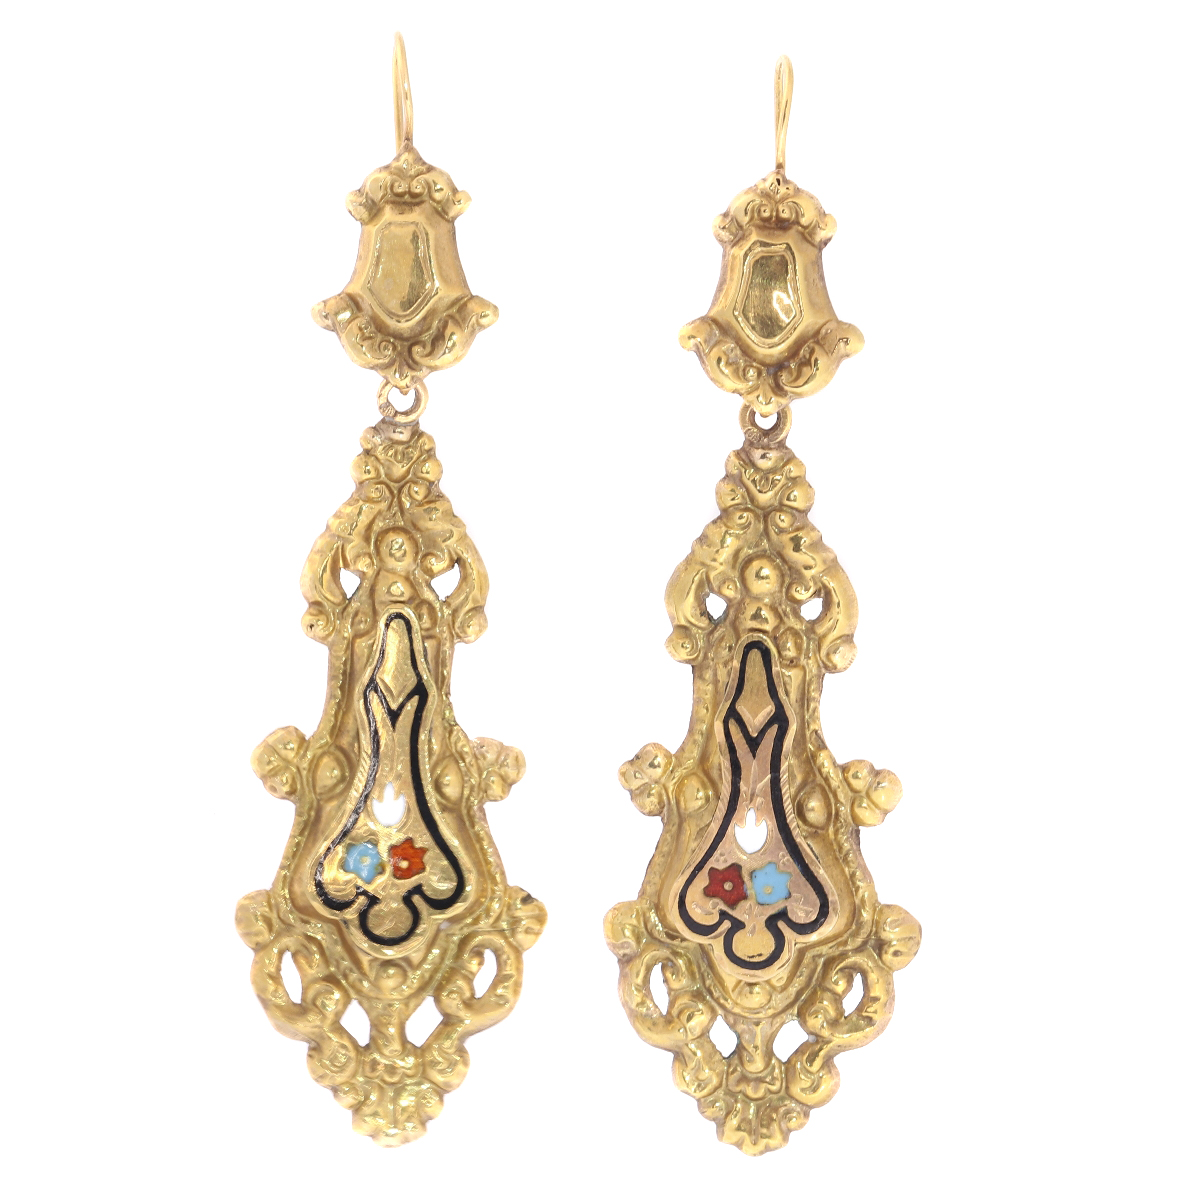 Georgian or Early Victorian long pendant earrings with enamel made in Belgium